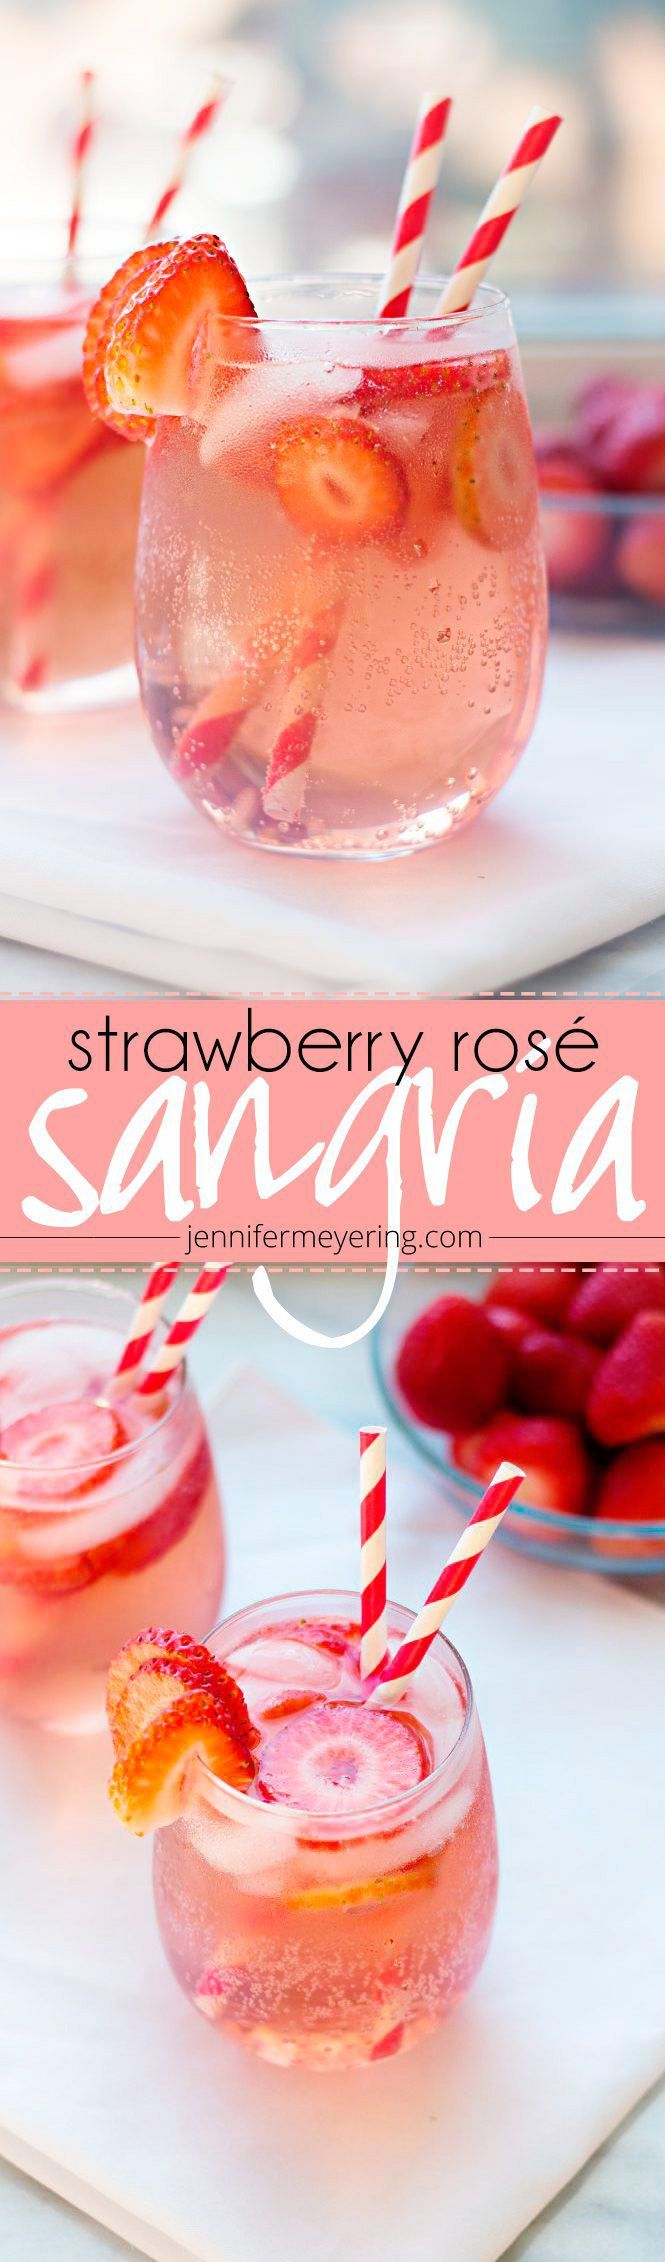 Strawberry Ros Sangria